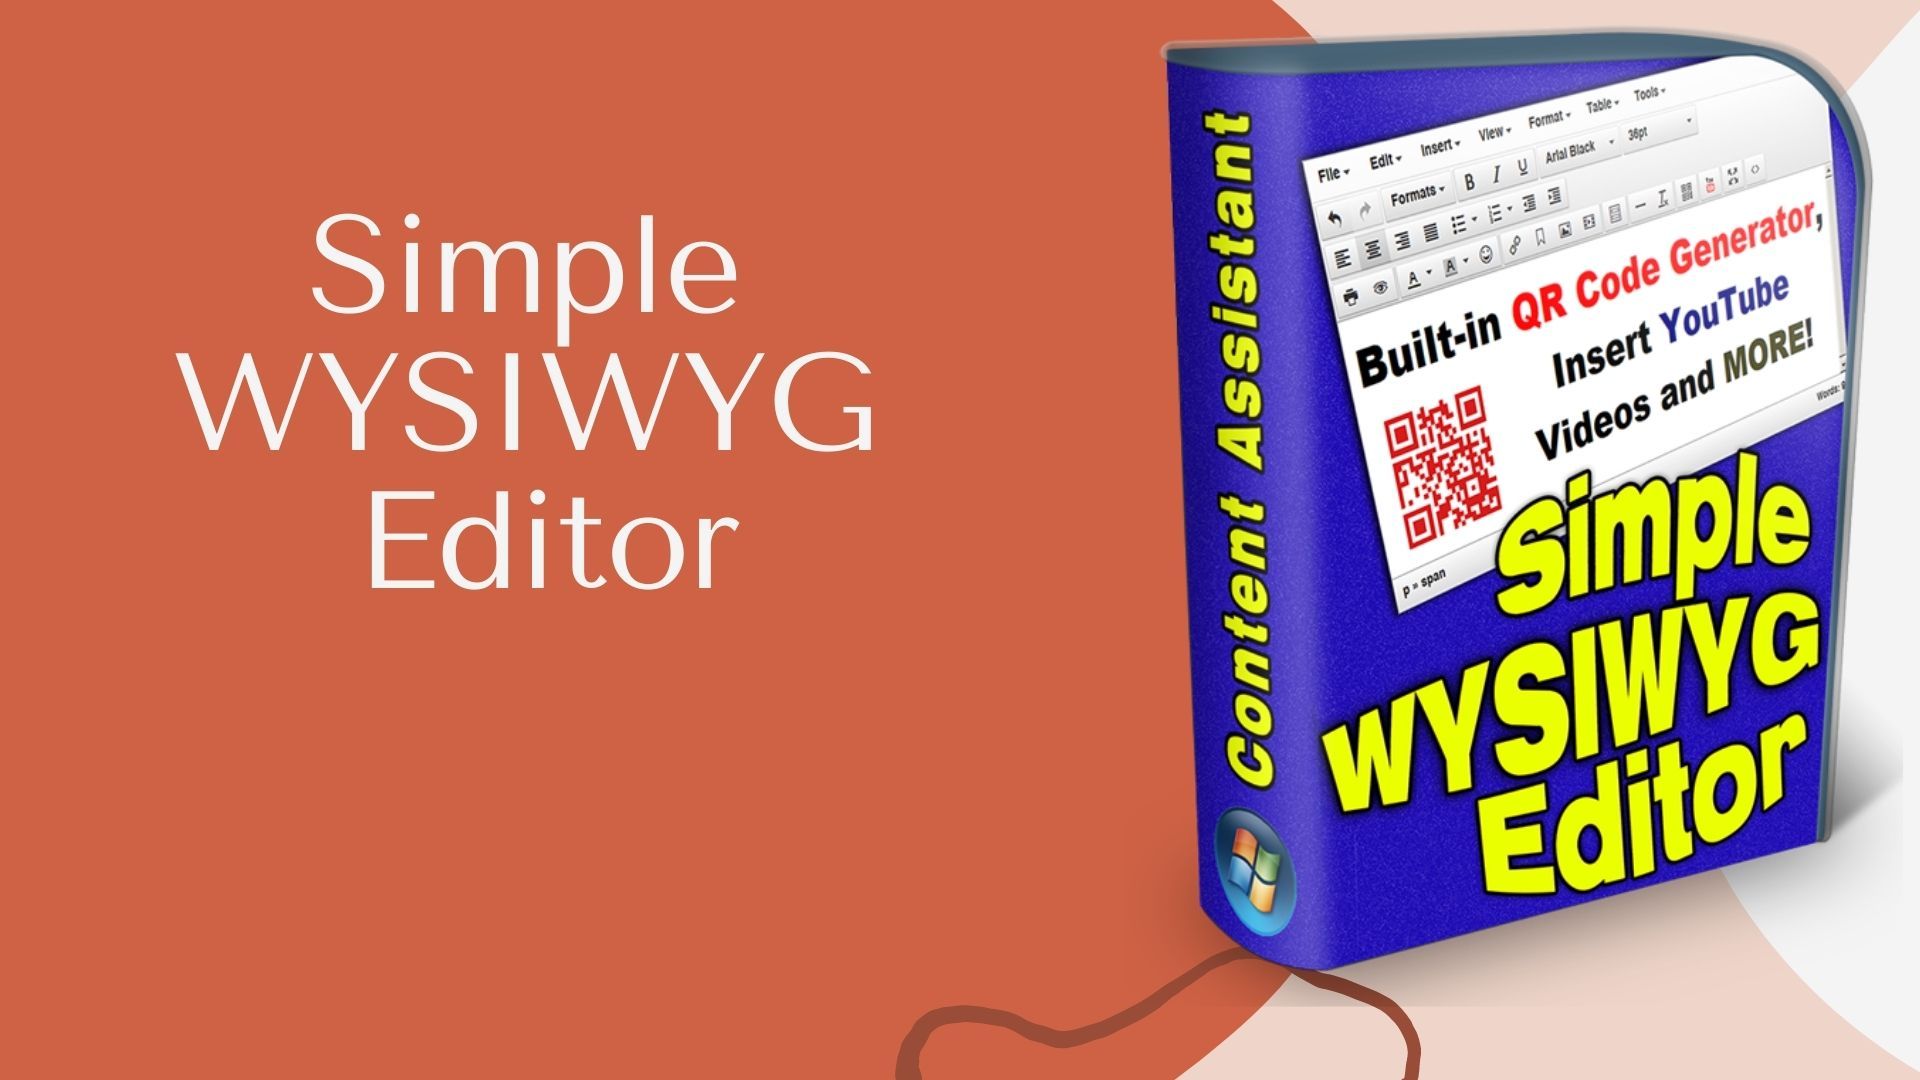 Simple WYSIWYG Editor Insert Youtube Videos and MORE.